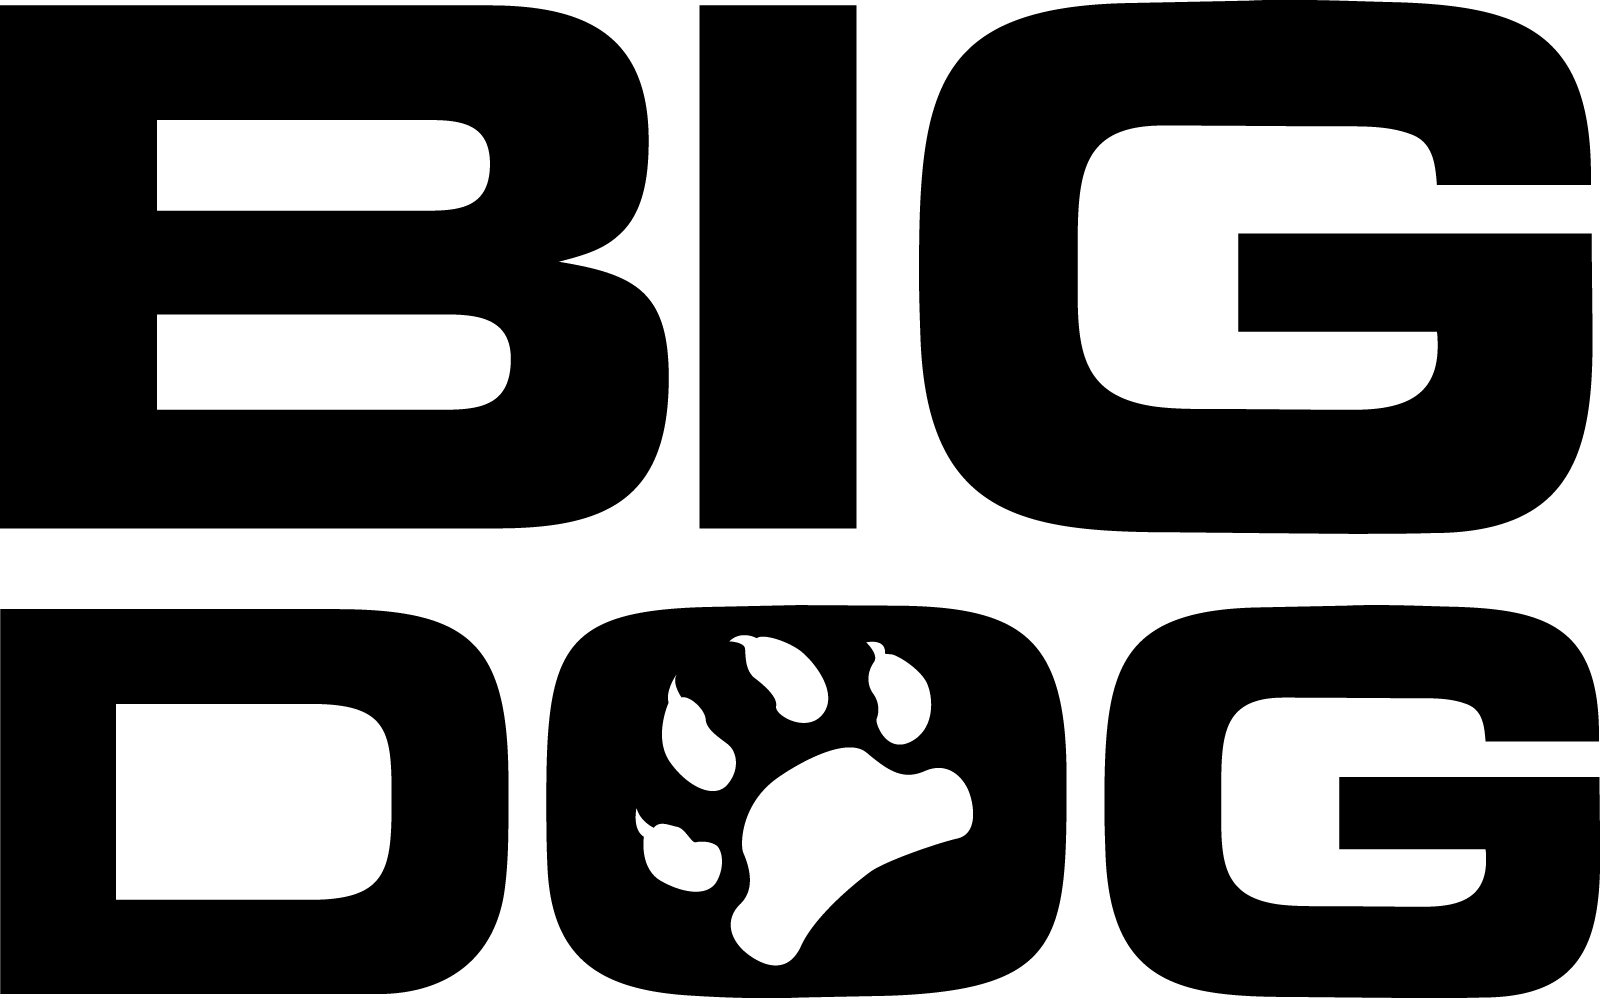 BIG DOG Gear